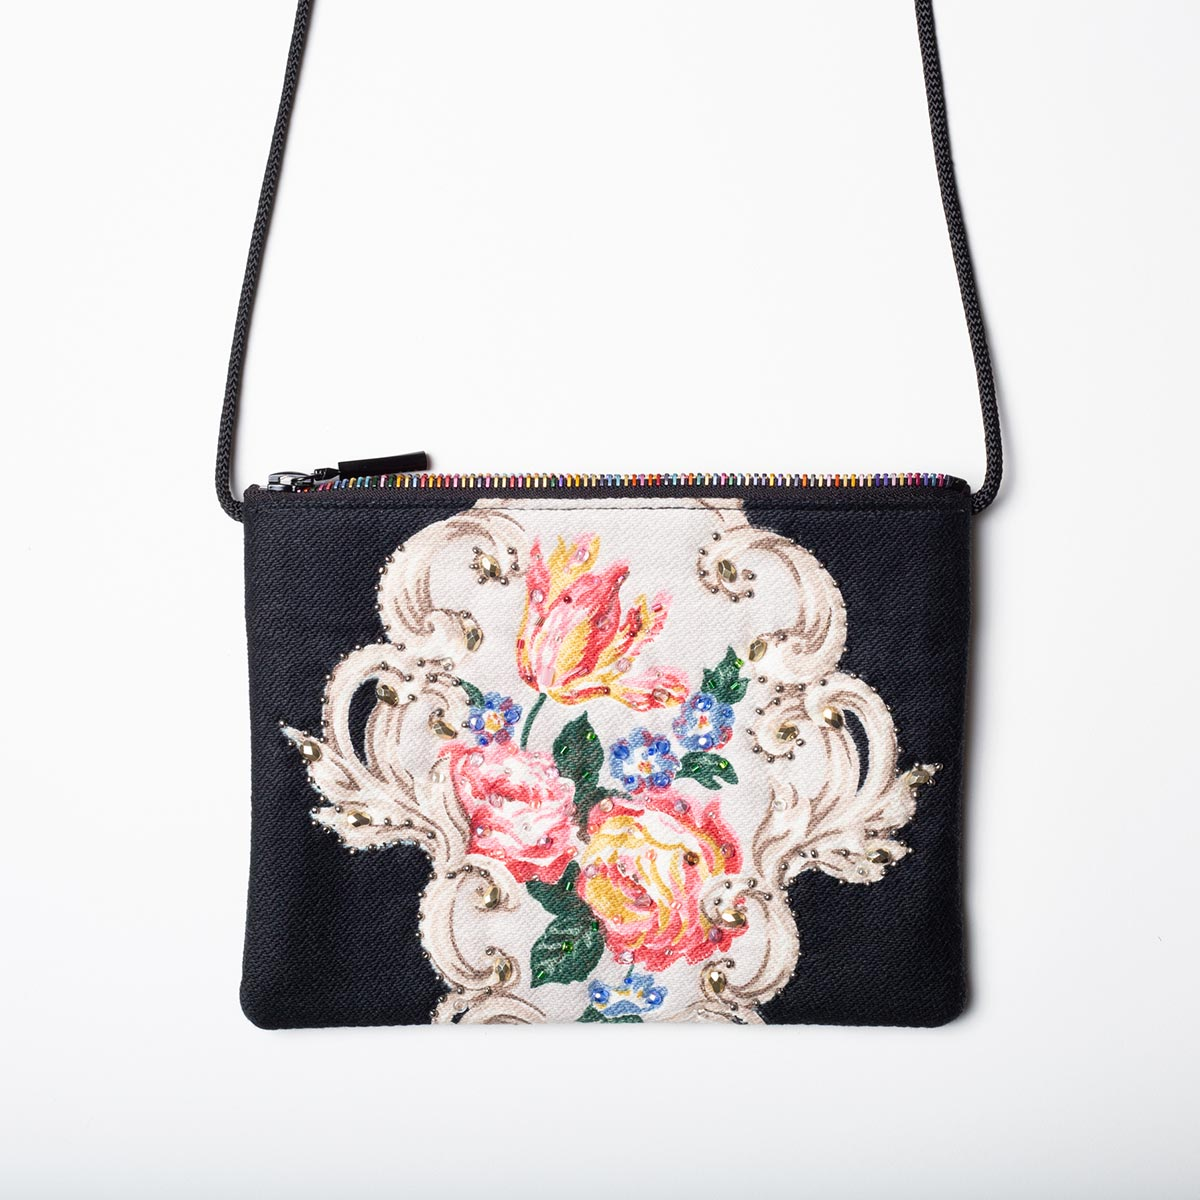 The Opera Bag – Romantic Floral on Black